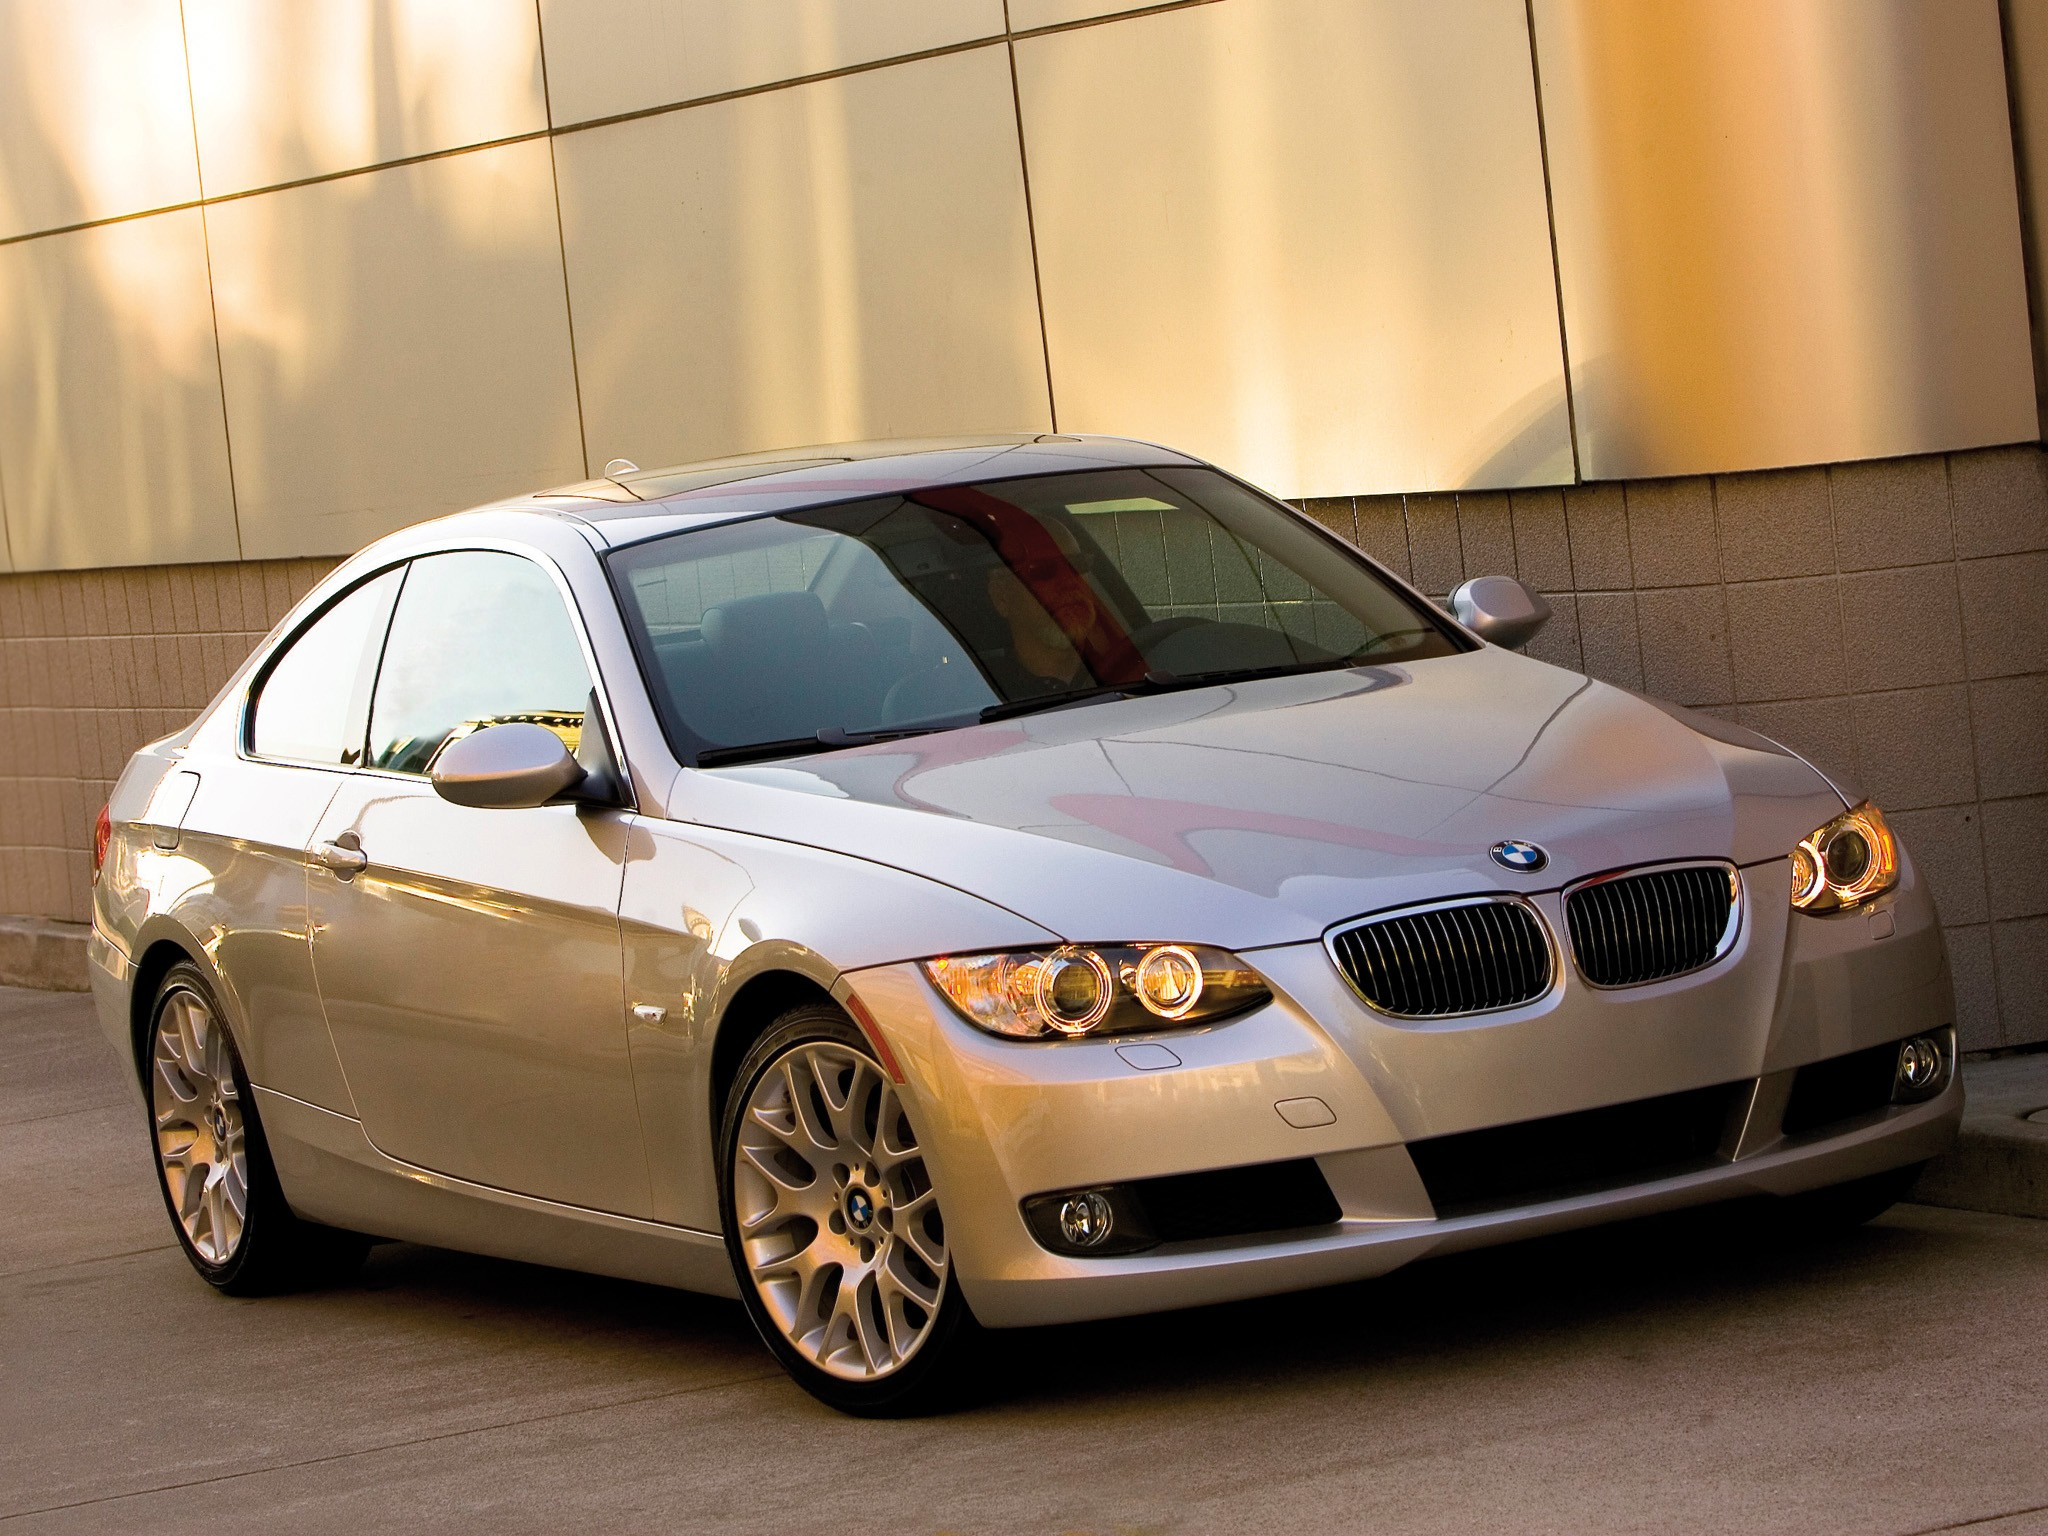 2006 Bmw 325xi >> BMW 3 Series Coupe (E92) specs & photos - 2006, 2007, 2008, 2009, 2010 - autoevolution